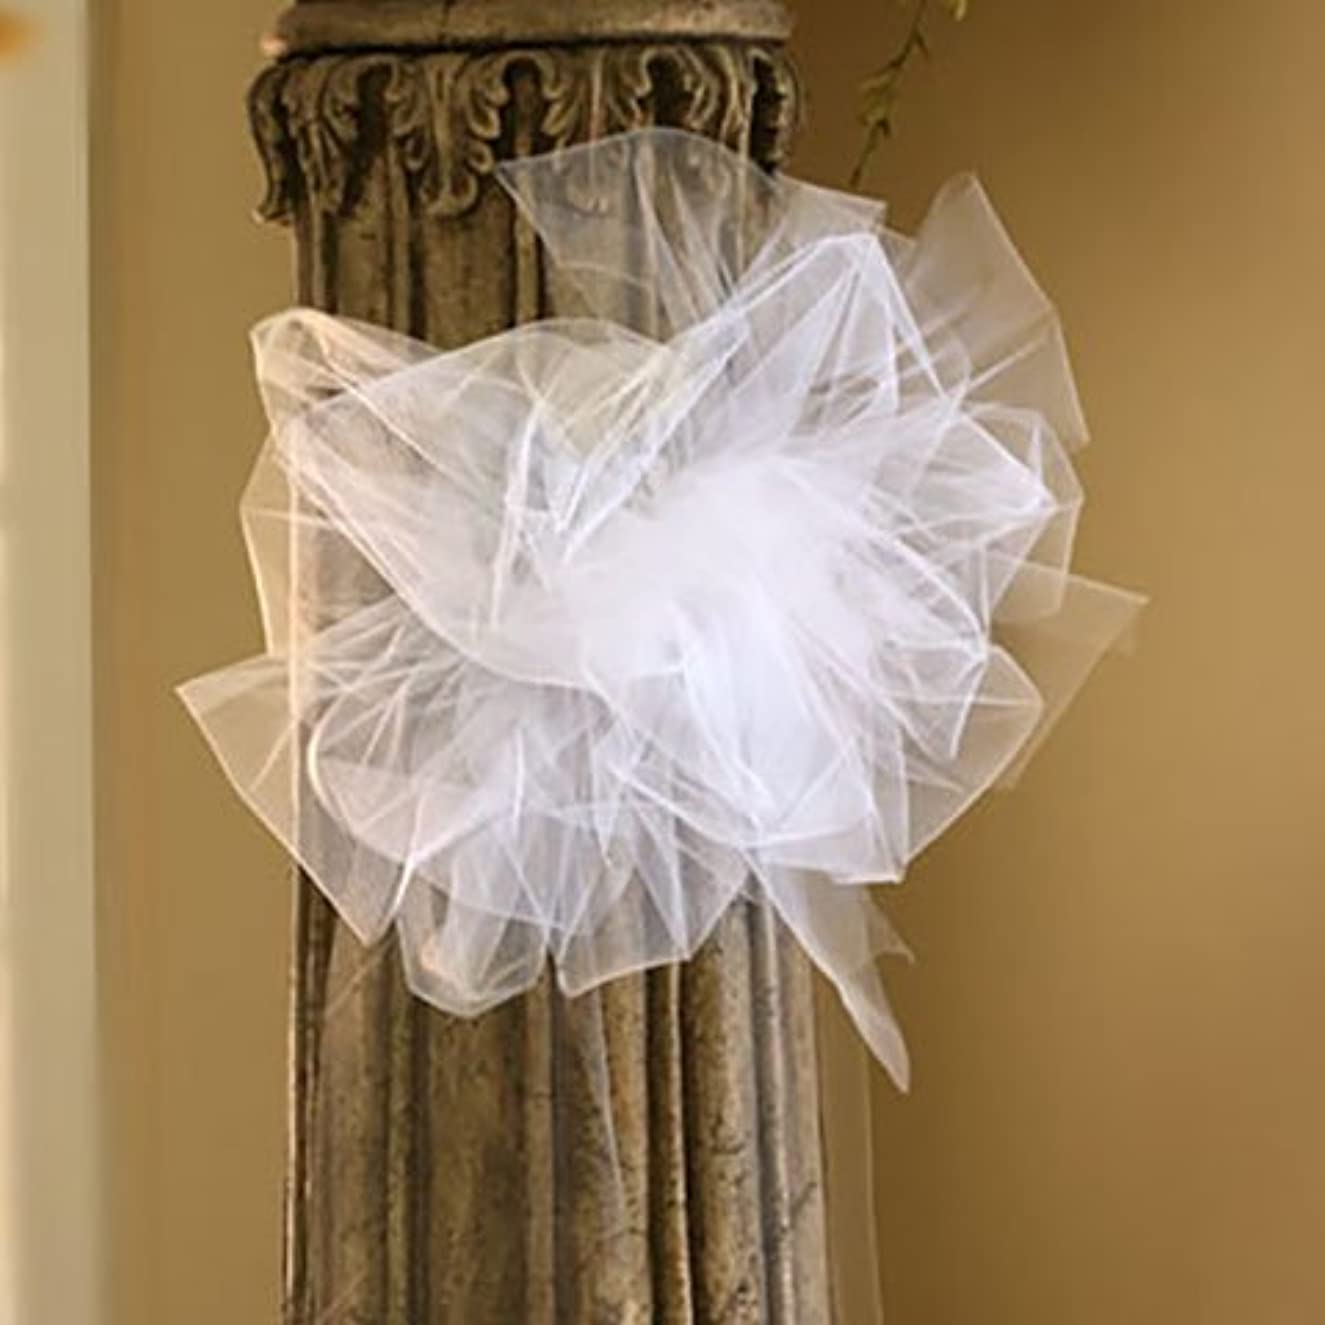 8 yrd Spool 3 Pack White Tulle Ribbon Banquet Chair Decorating Anniversary Dressing up The Church, Reception Hall, Outdoor Wedding Venue